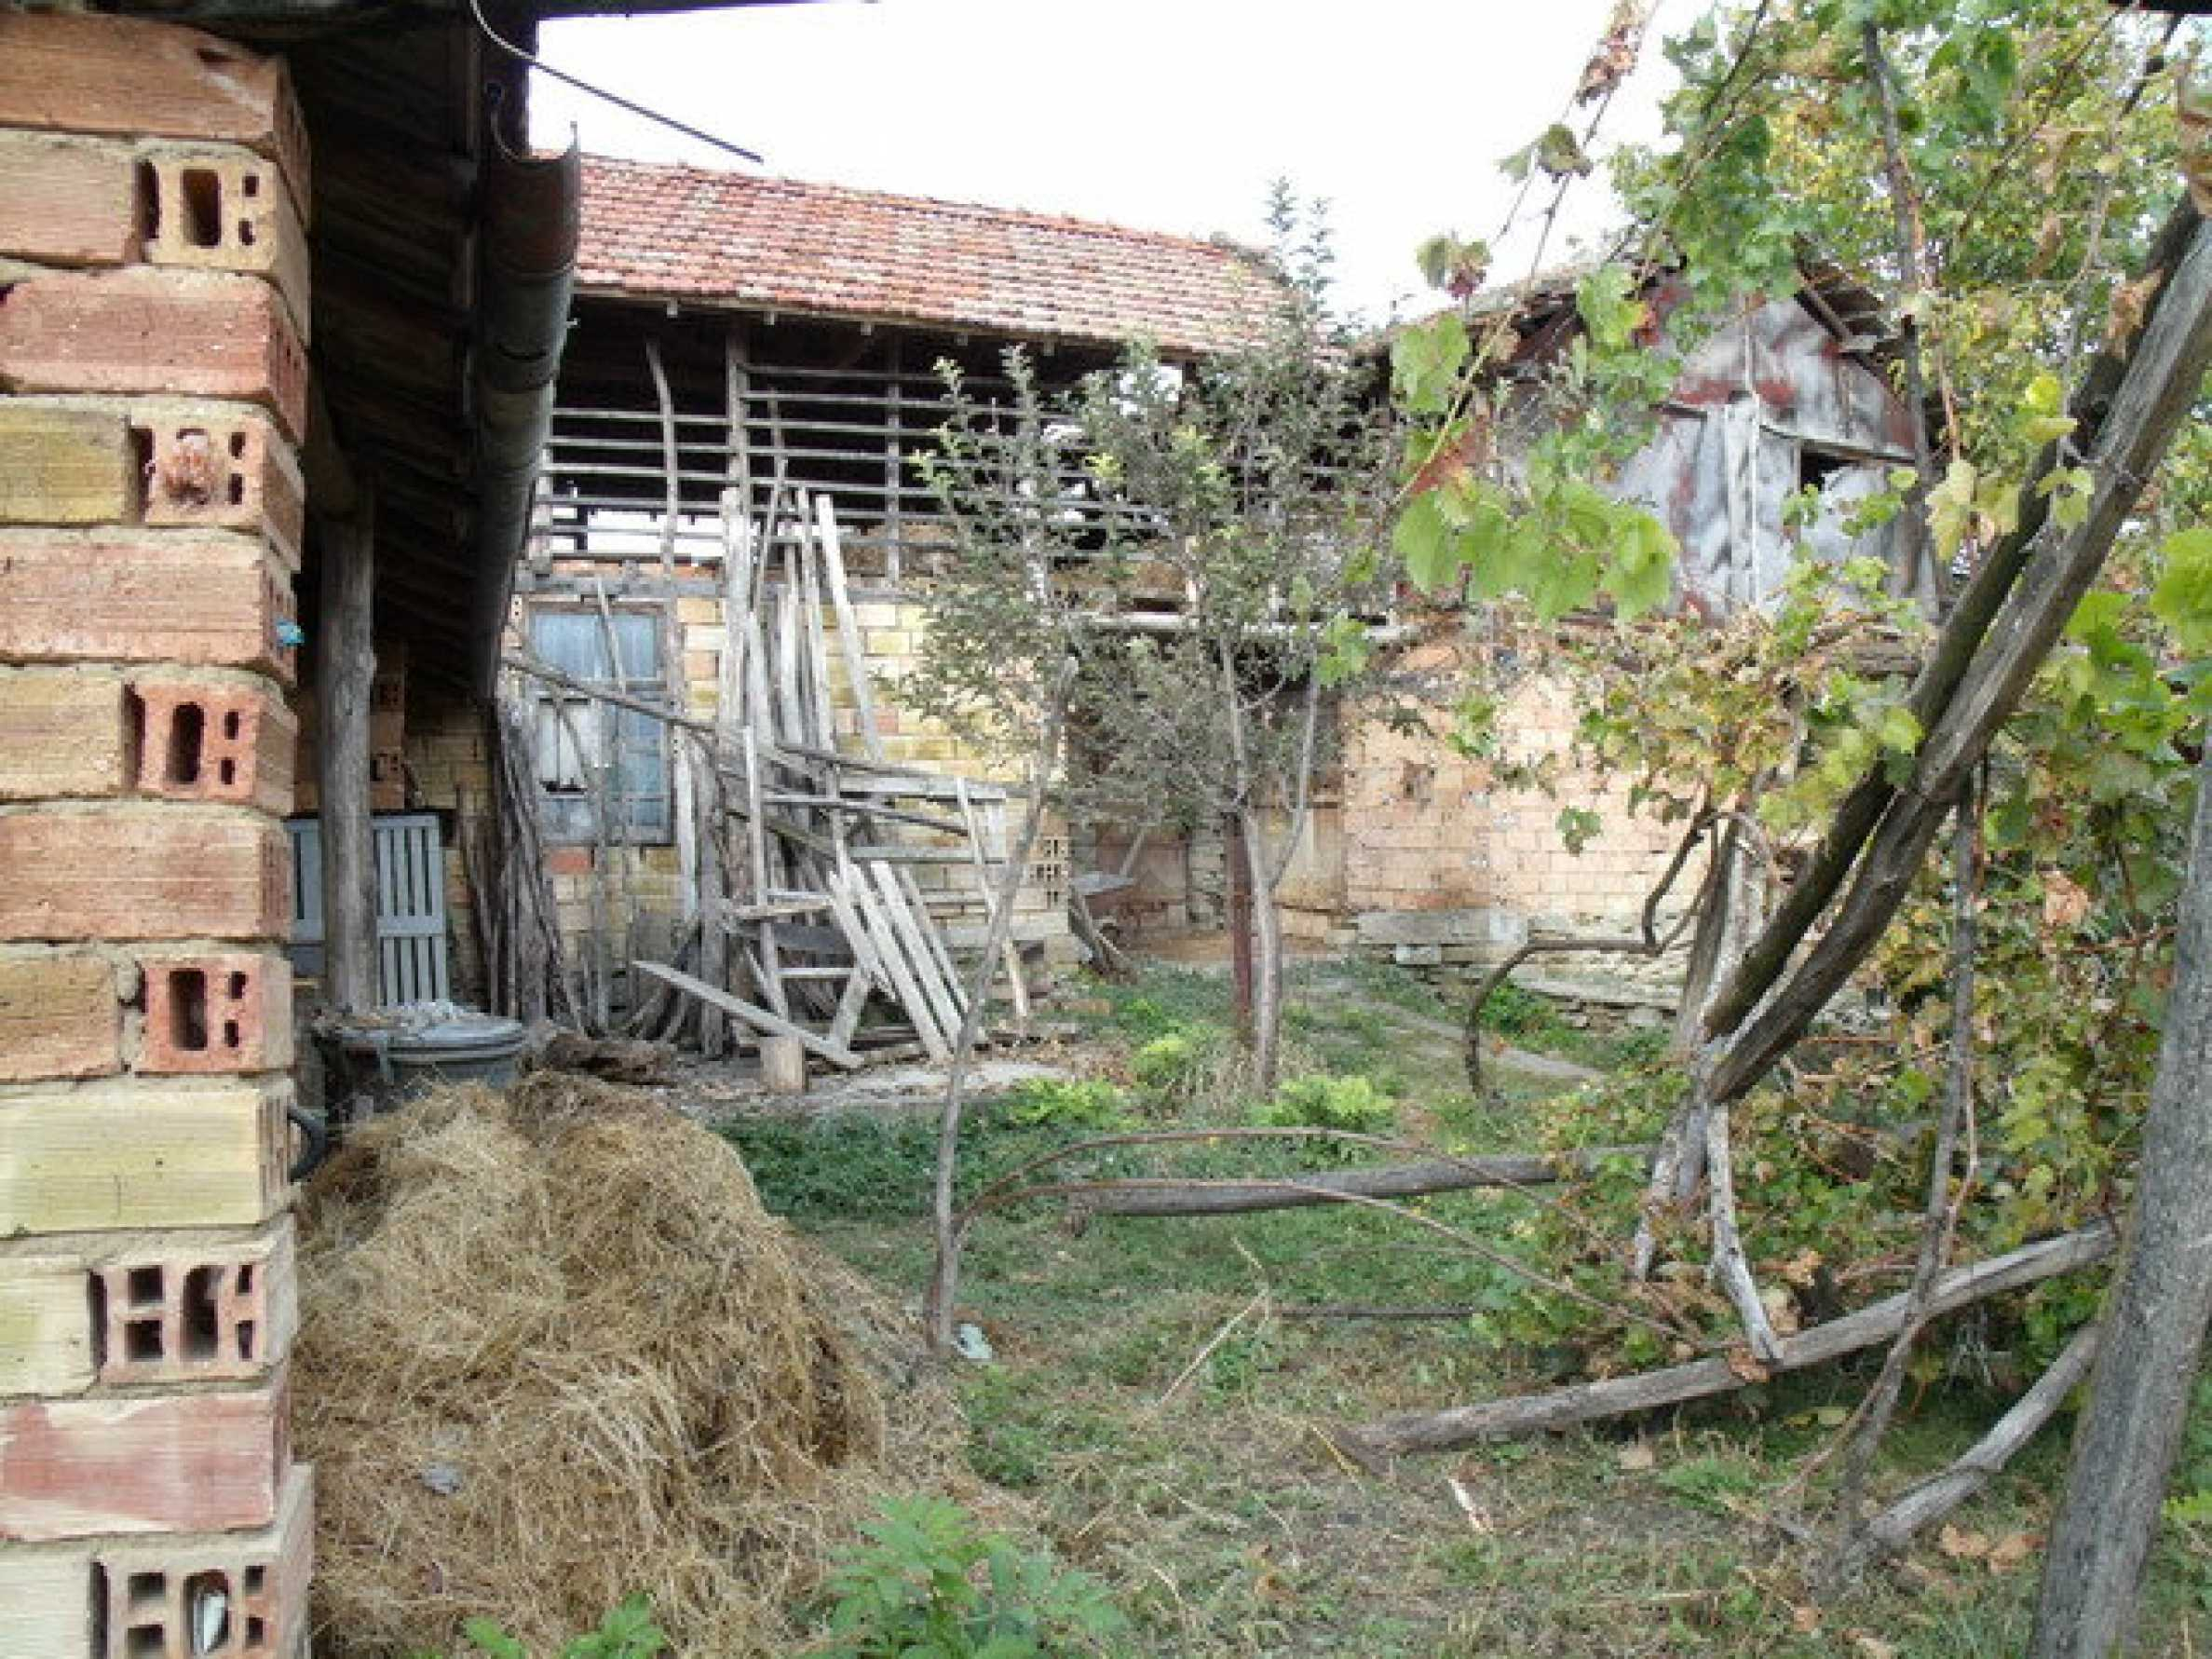 House in a small town, 15 km. from the old capital of Veliko Tarnovo 30